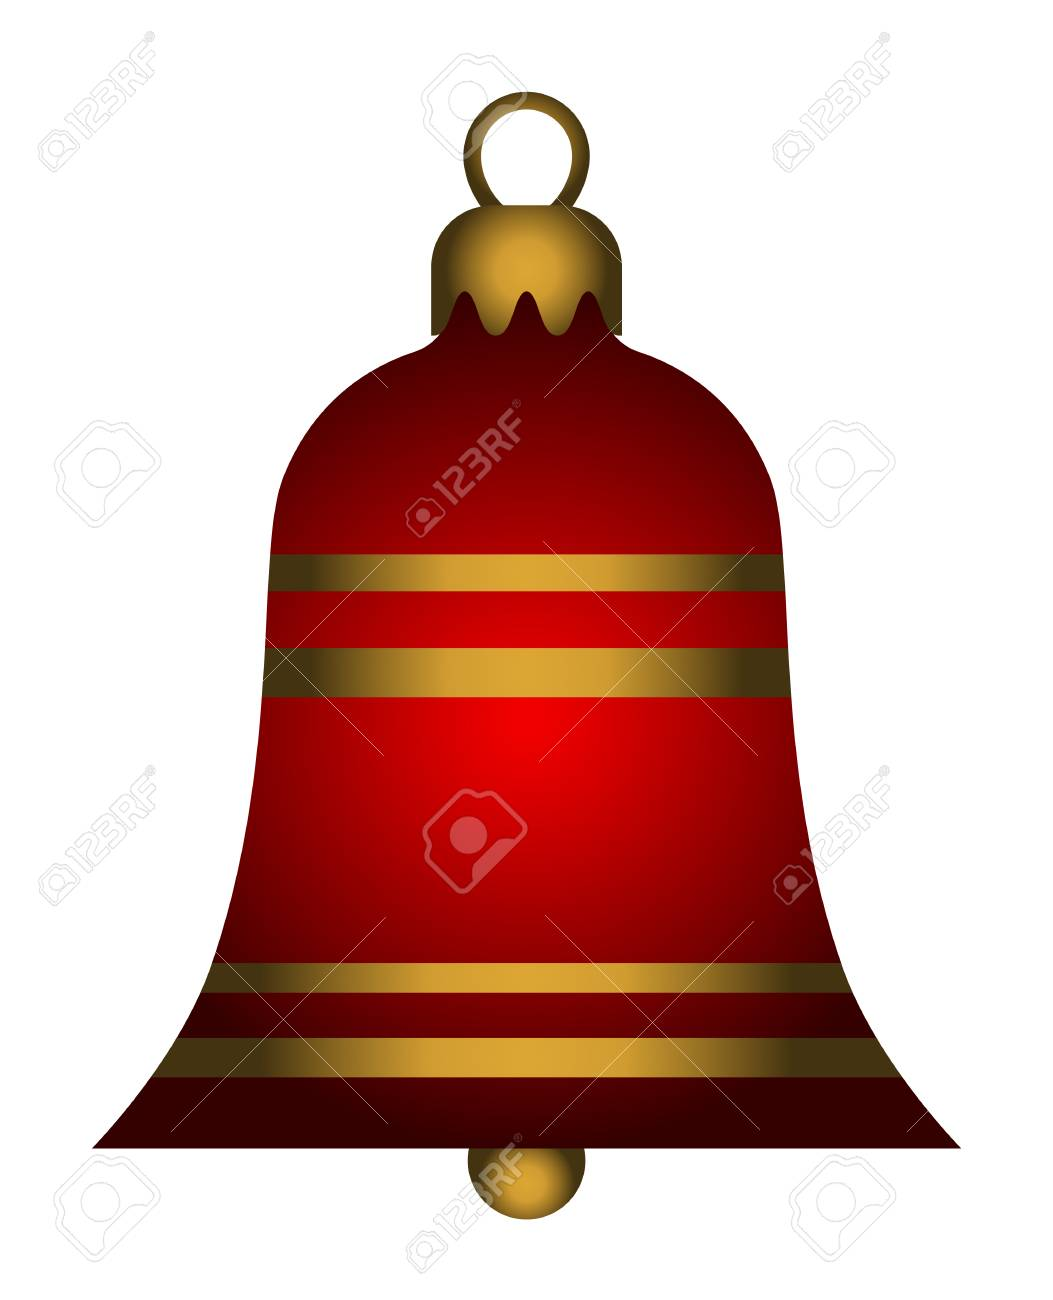 Christmas Bell.Christmas Bell Isolated On White Background